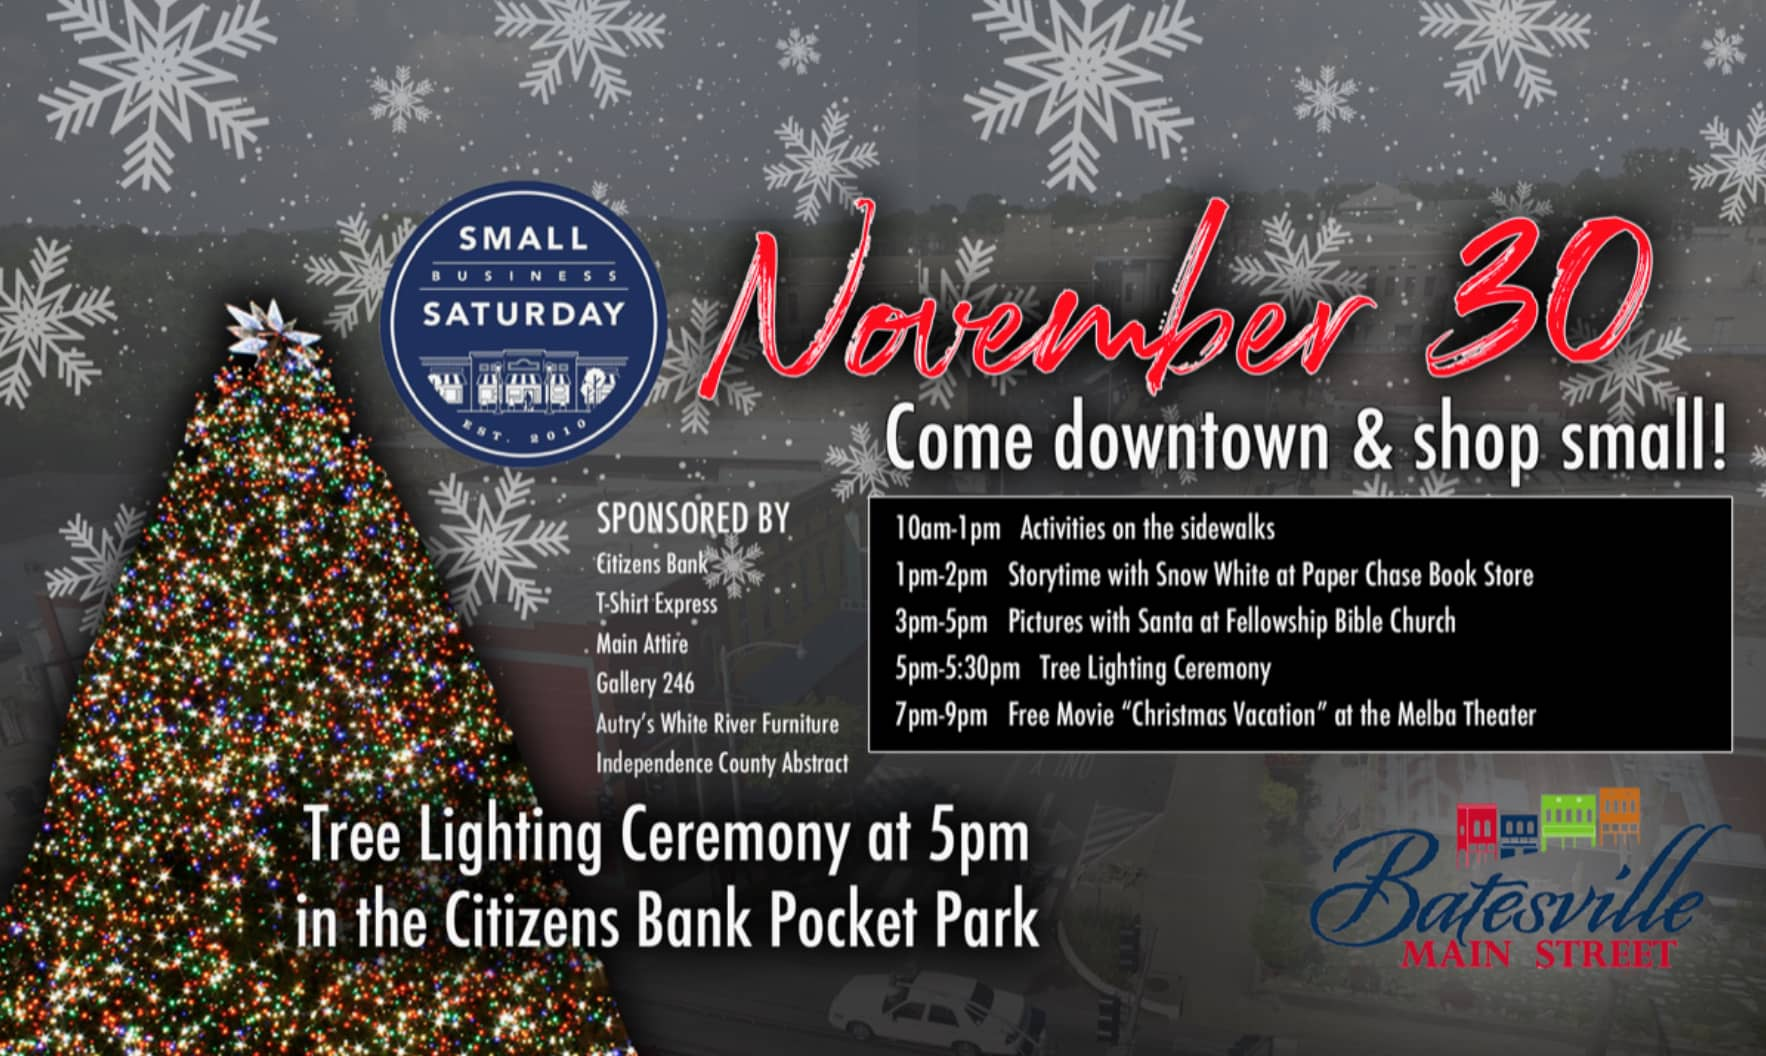 Small Business Saturday schedule